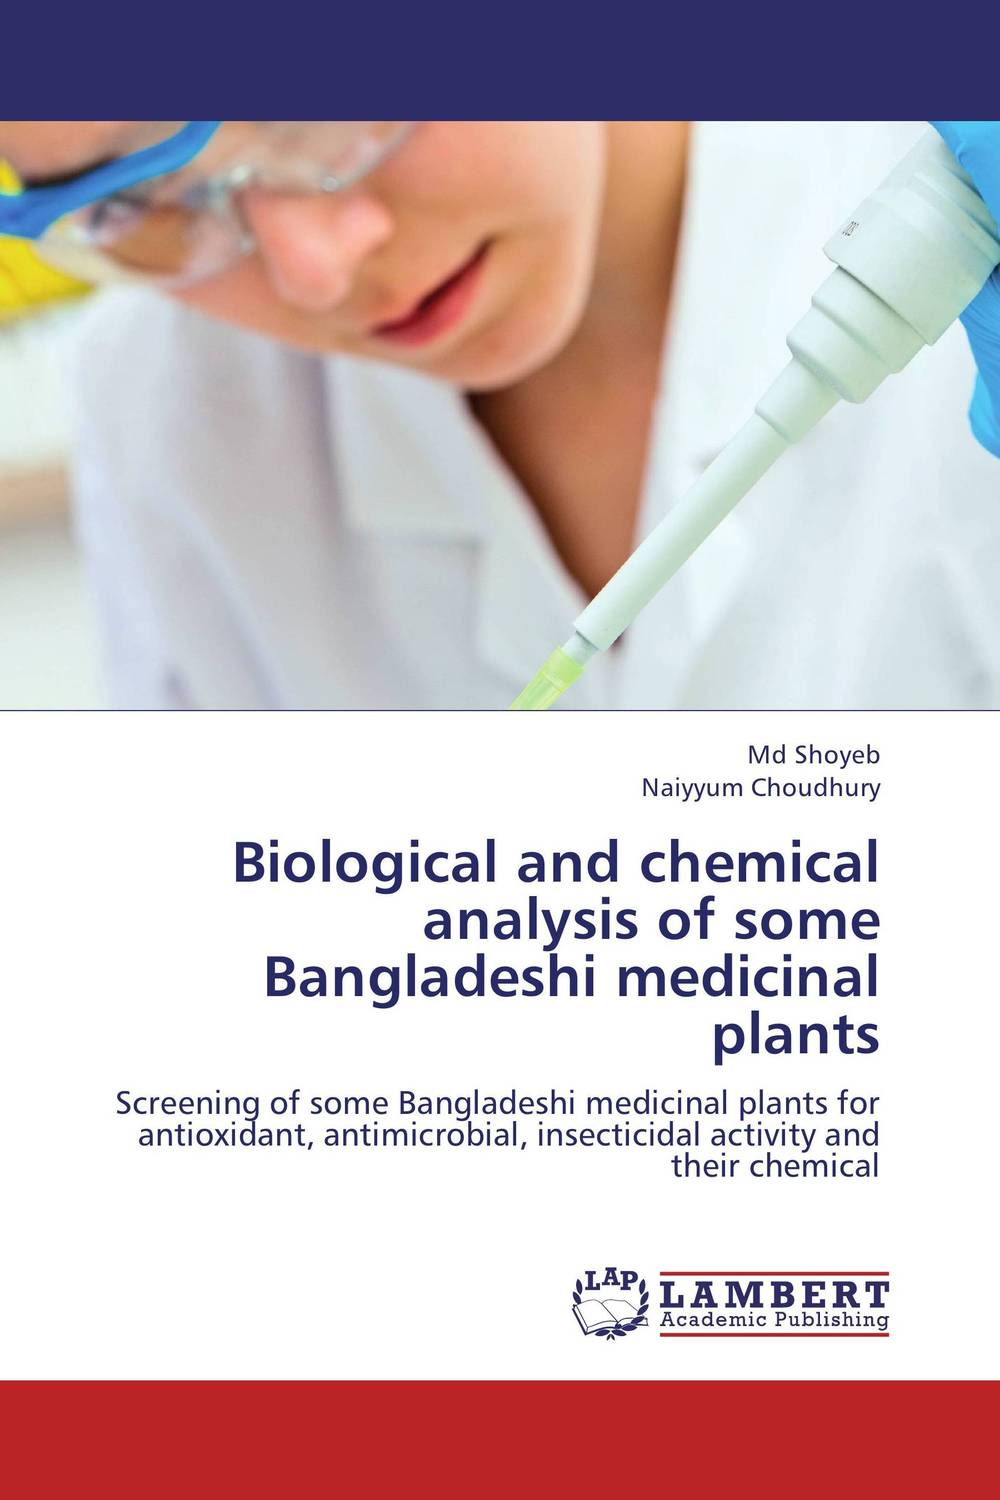 Biological and chemical analysis of some Bangladeshi medicinal plants sampling and analysis of environmental chemical pollutants a complete guide